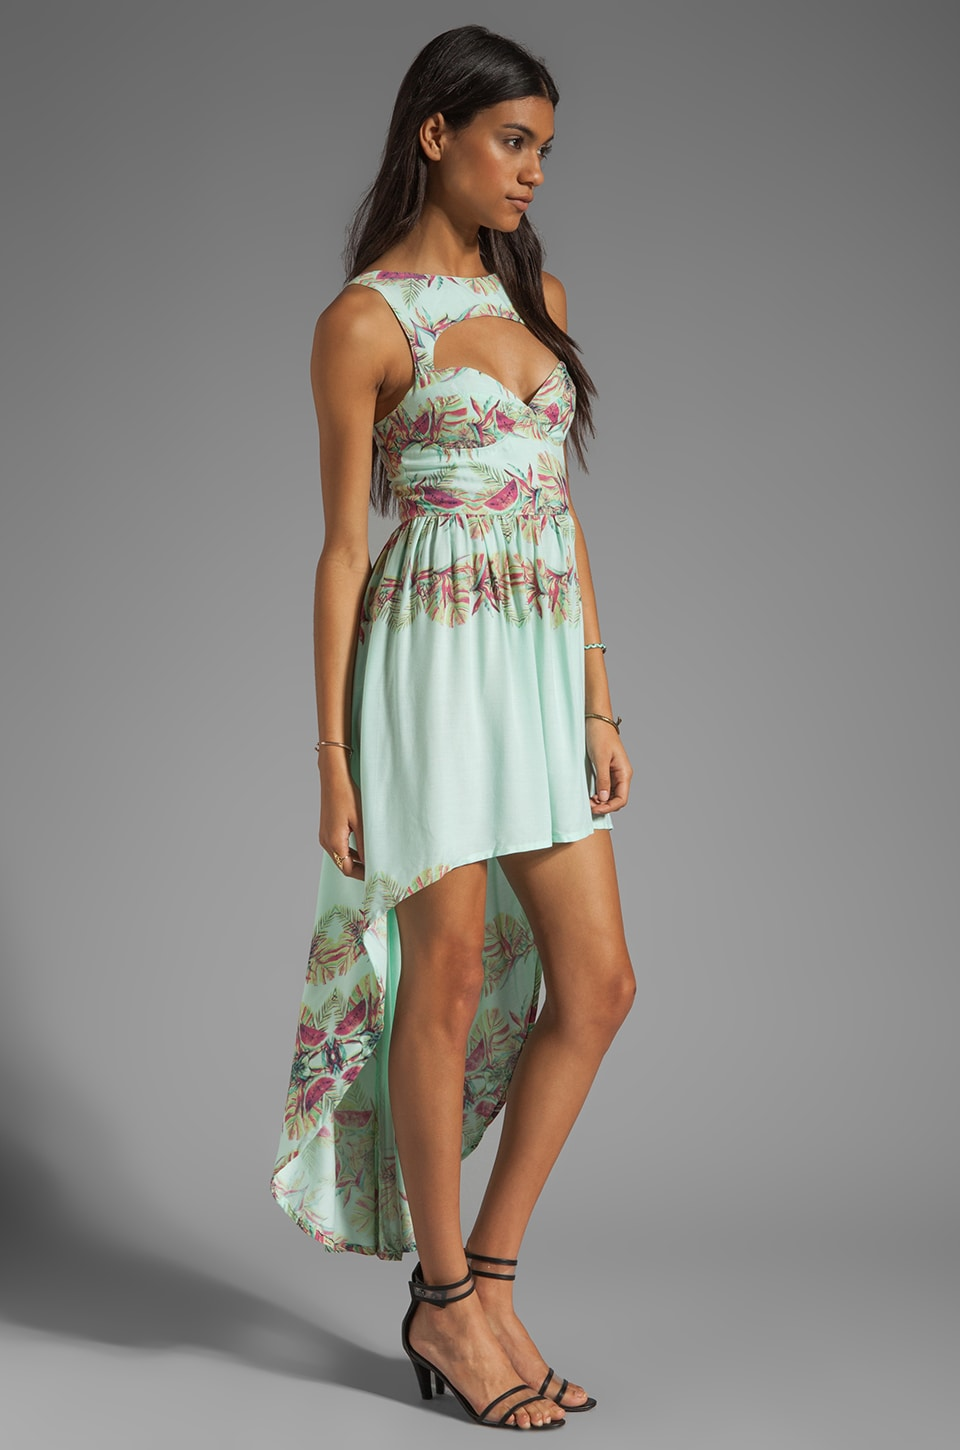 This is a Love Song Marina Del Ray Dress in Tropical